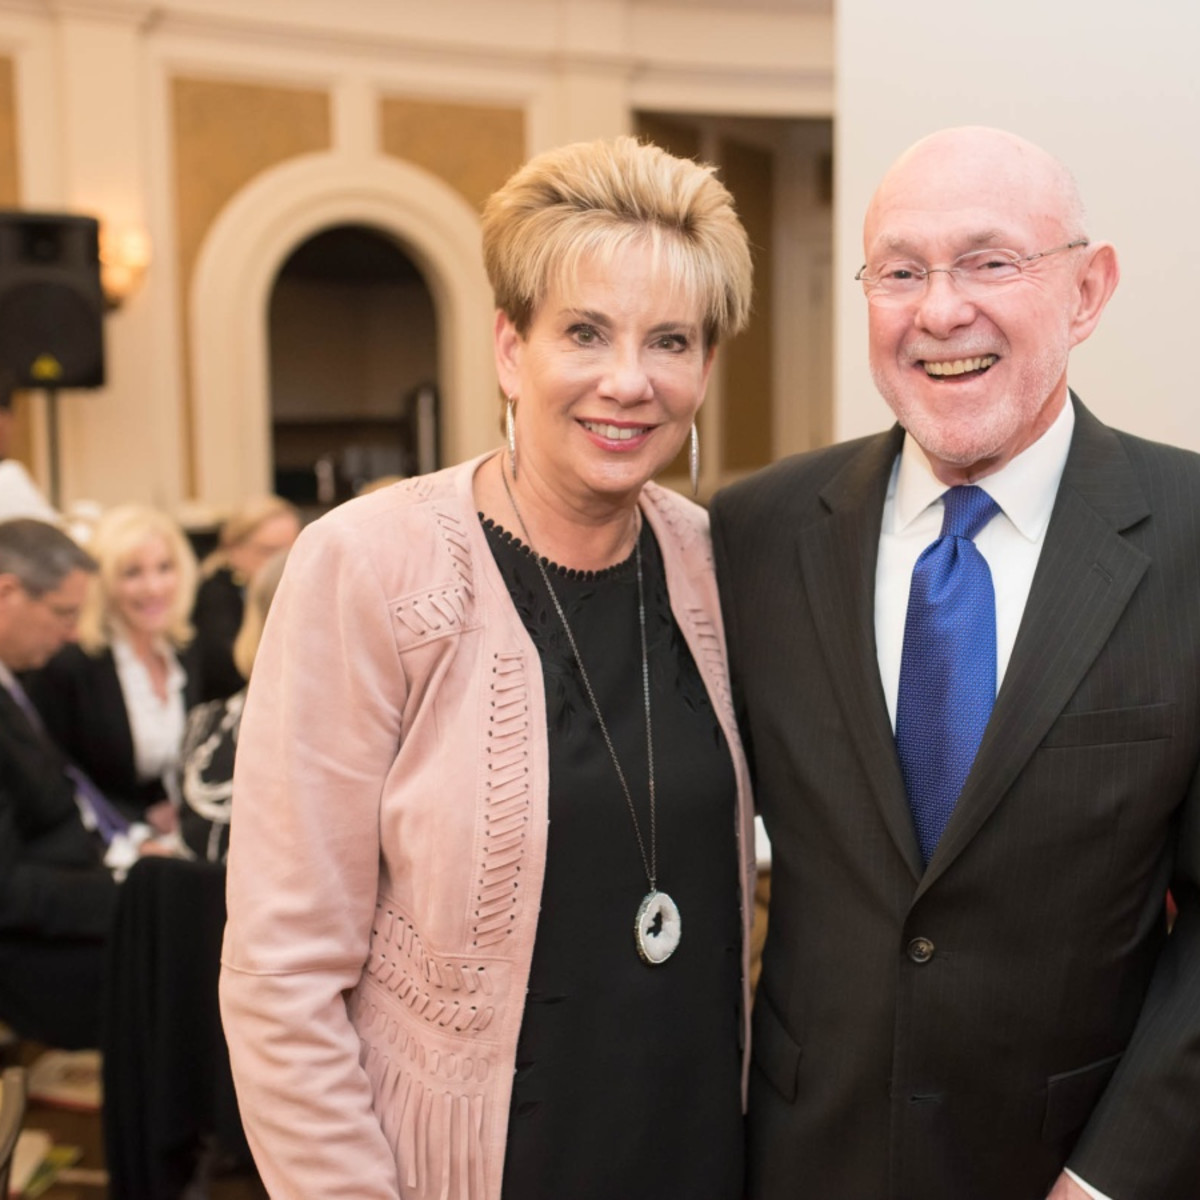 Houston, TCH Celebration of Champions, February 2018,  Dr. ZoAnn Dreyer, Dr. David Poplack